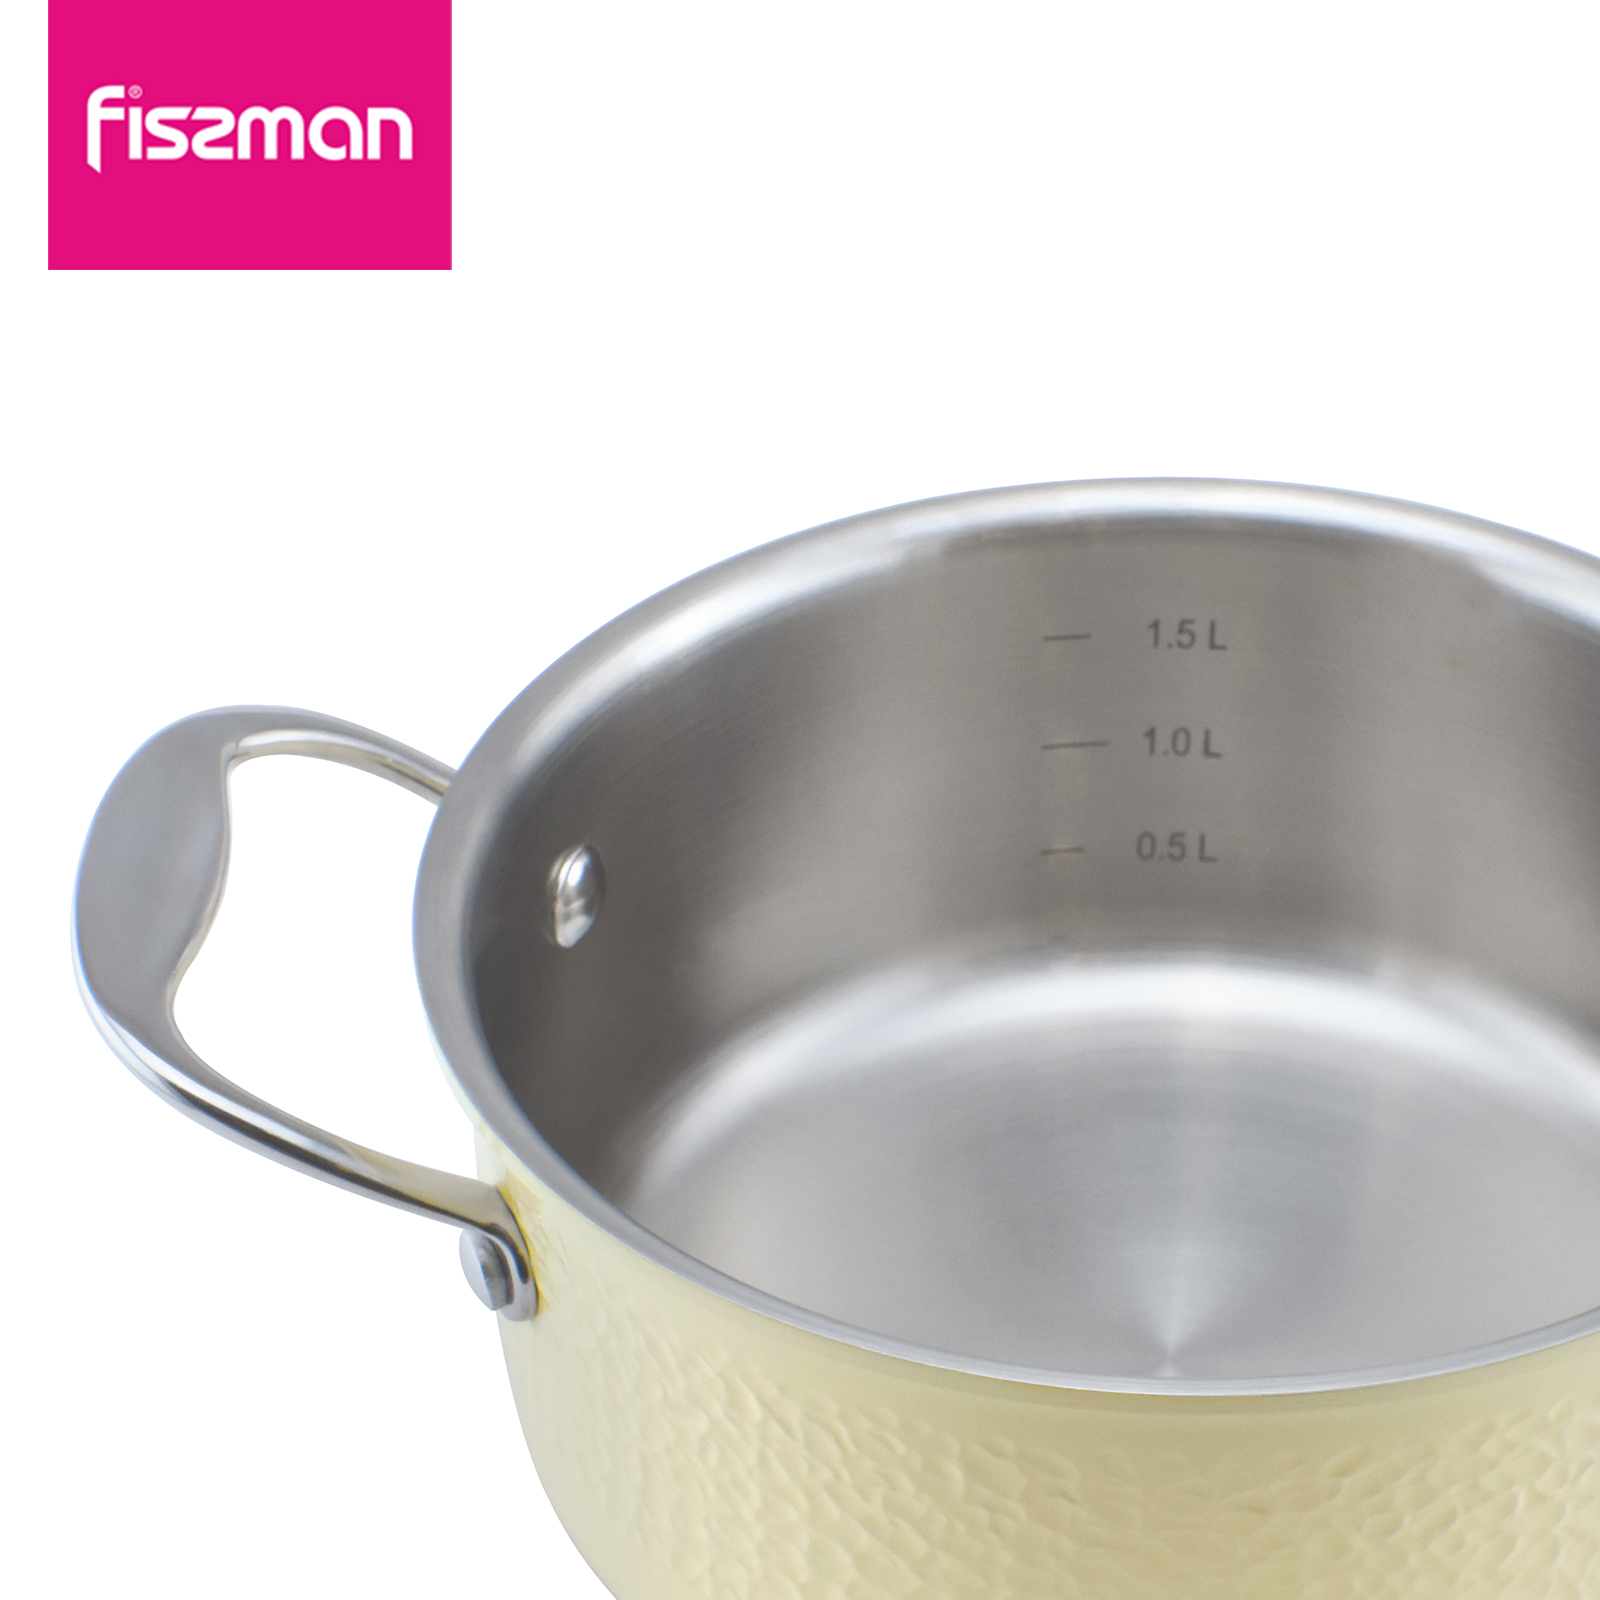 FISSMAN 2018 Hot Sale Eco-Friendly LFGB  24cm Induction 304 Stainless Steel Cookware Casserole With Glass Lid Soup Stock Pots